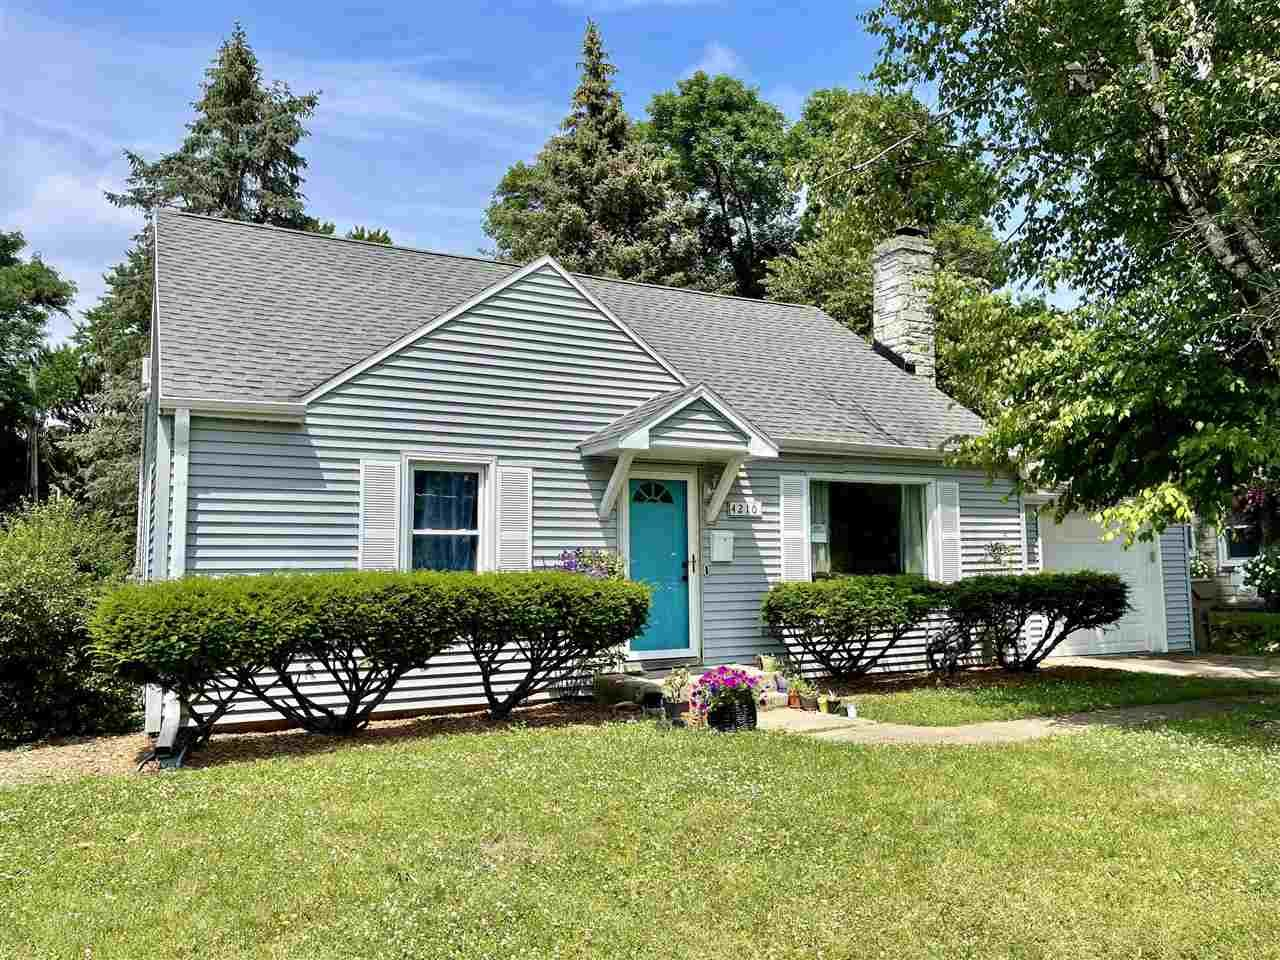 4210 Mineral Point Rd, Madison, WI 53705 - #: 1913133